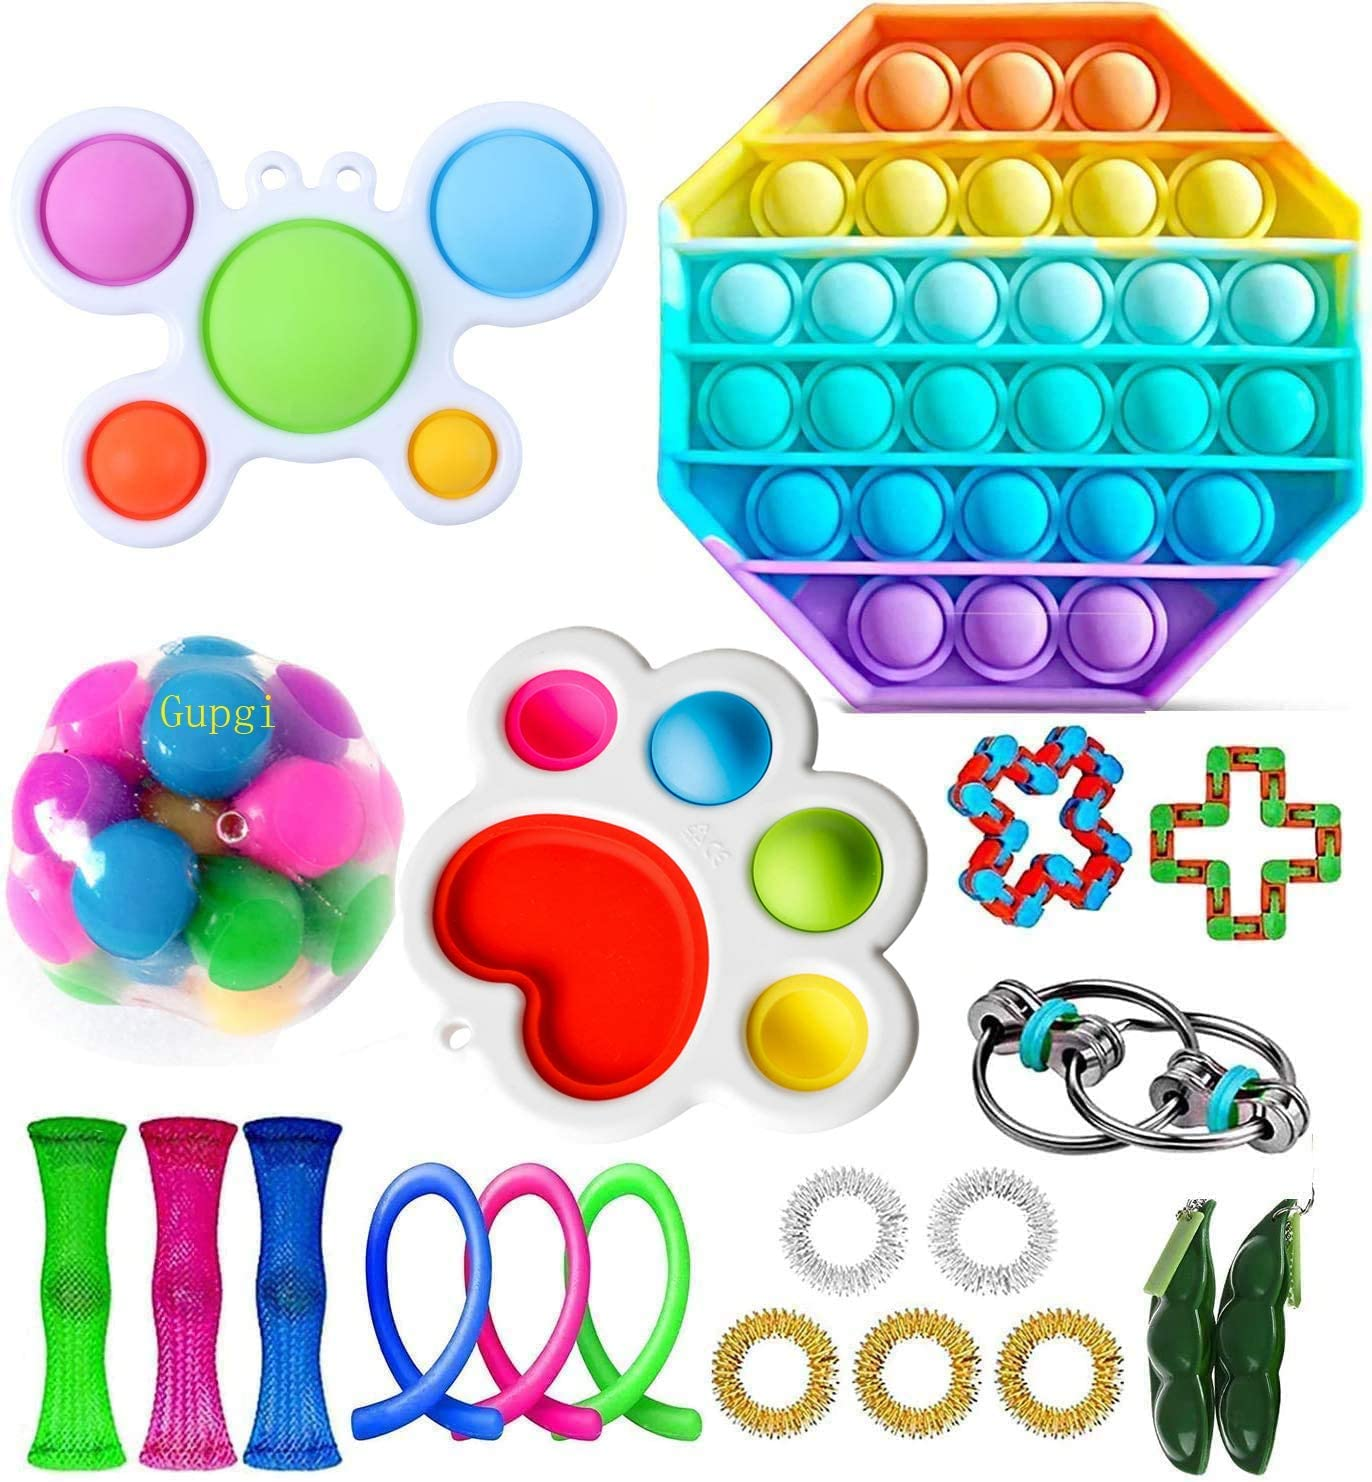 N//A Fidget/Simple/Dimple/Toy/Keychain/Stress/Reliever/Toy/Portable/Handheld/Mini/Decompression/Toy/Simple/Dimple/Fidget/Popper/Toy/Sensory/Toy